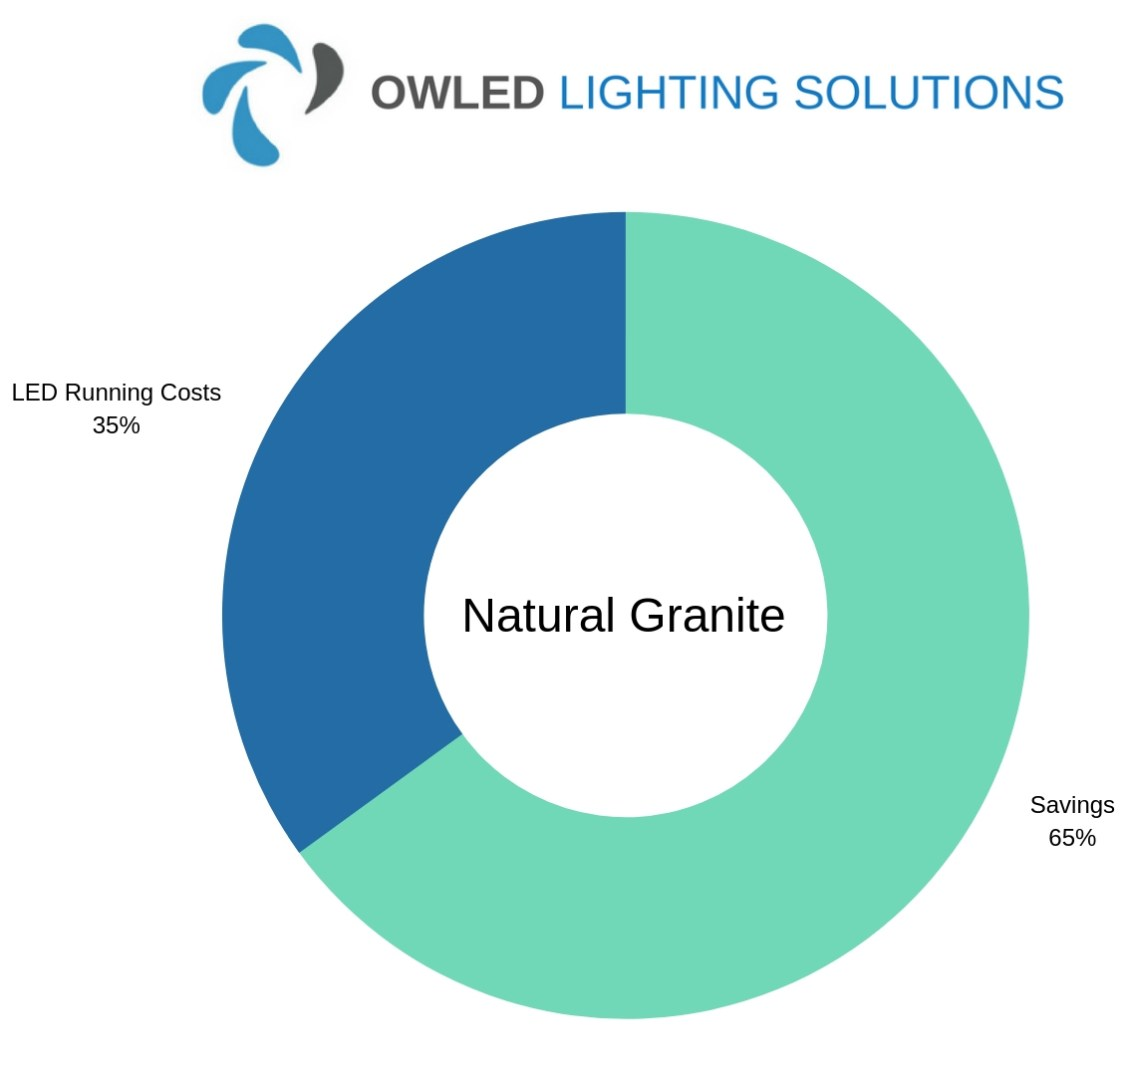 Chart showing Natural Granite's workshop Lighting Savings